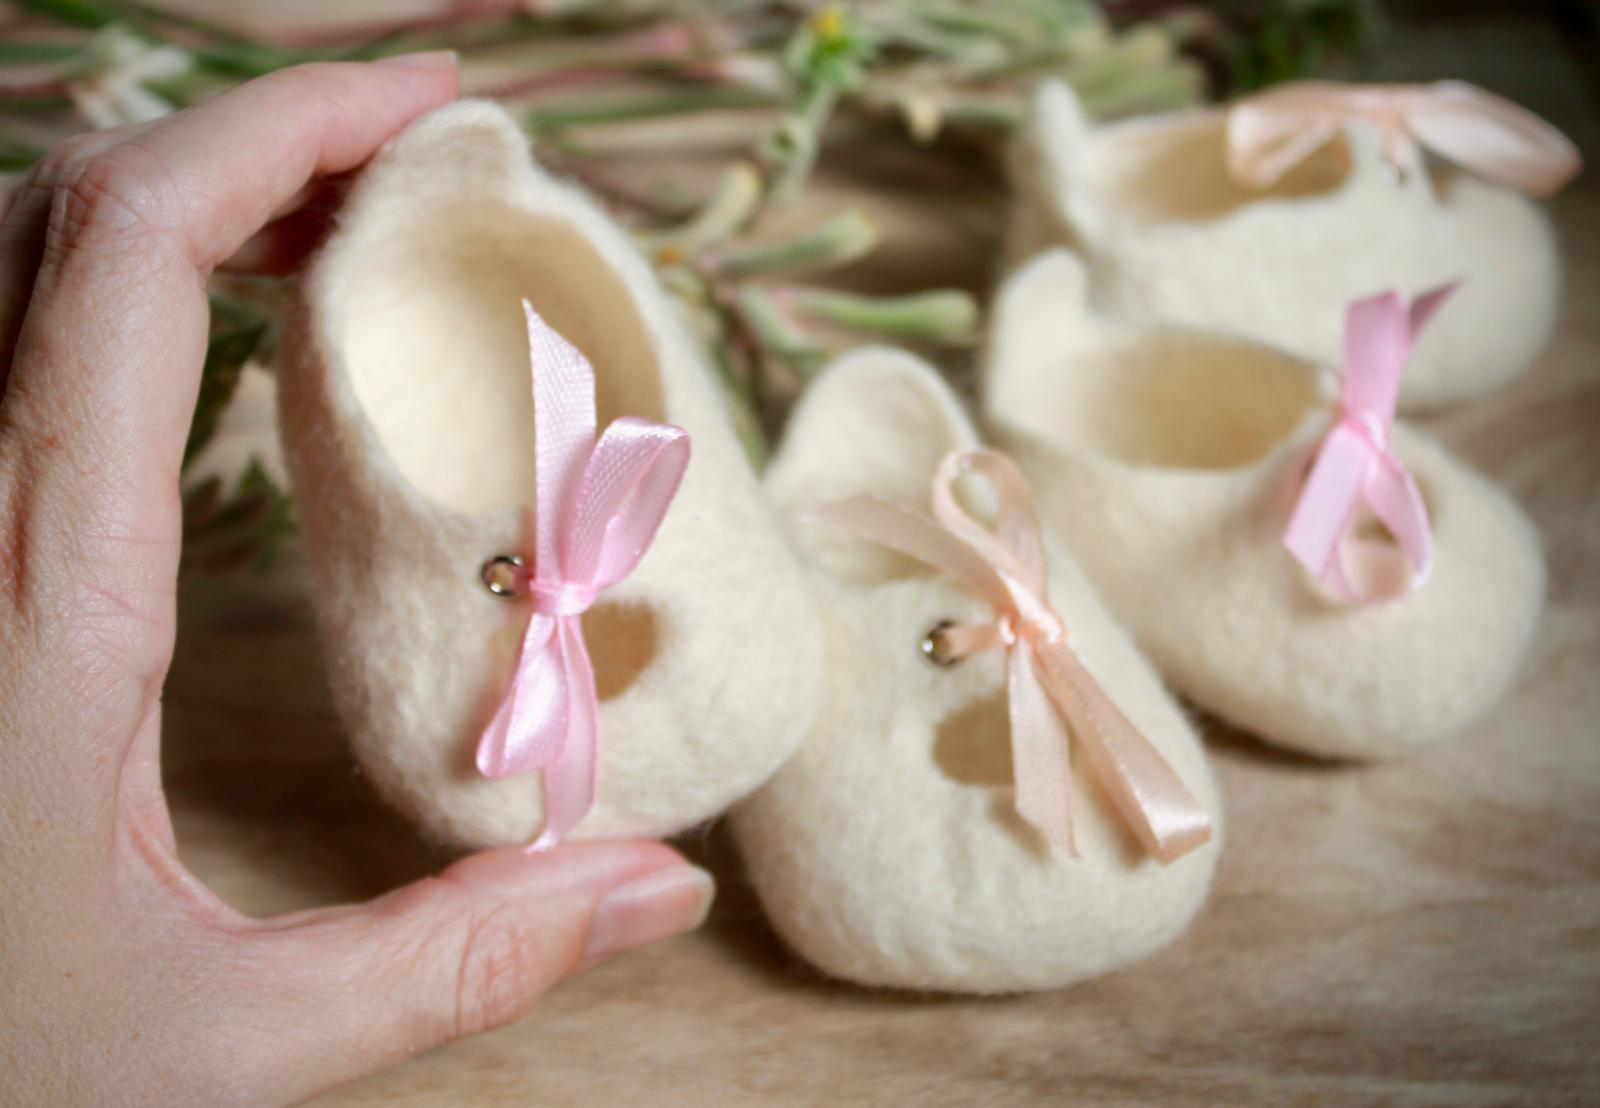 Melbourne Mary-Janes - Australian handmade special woollen felt baby shoes